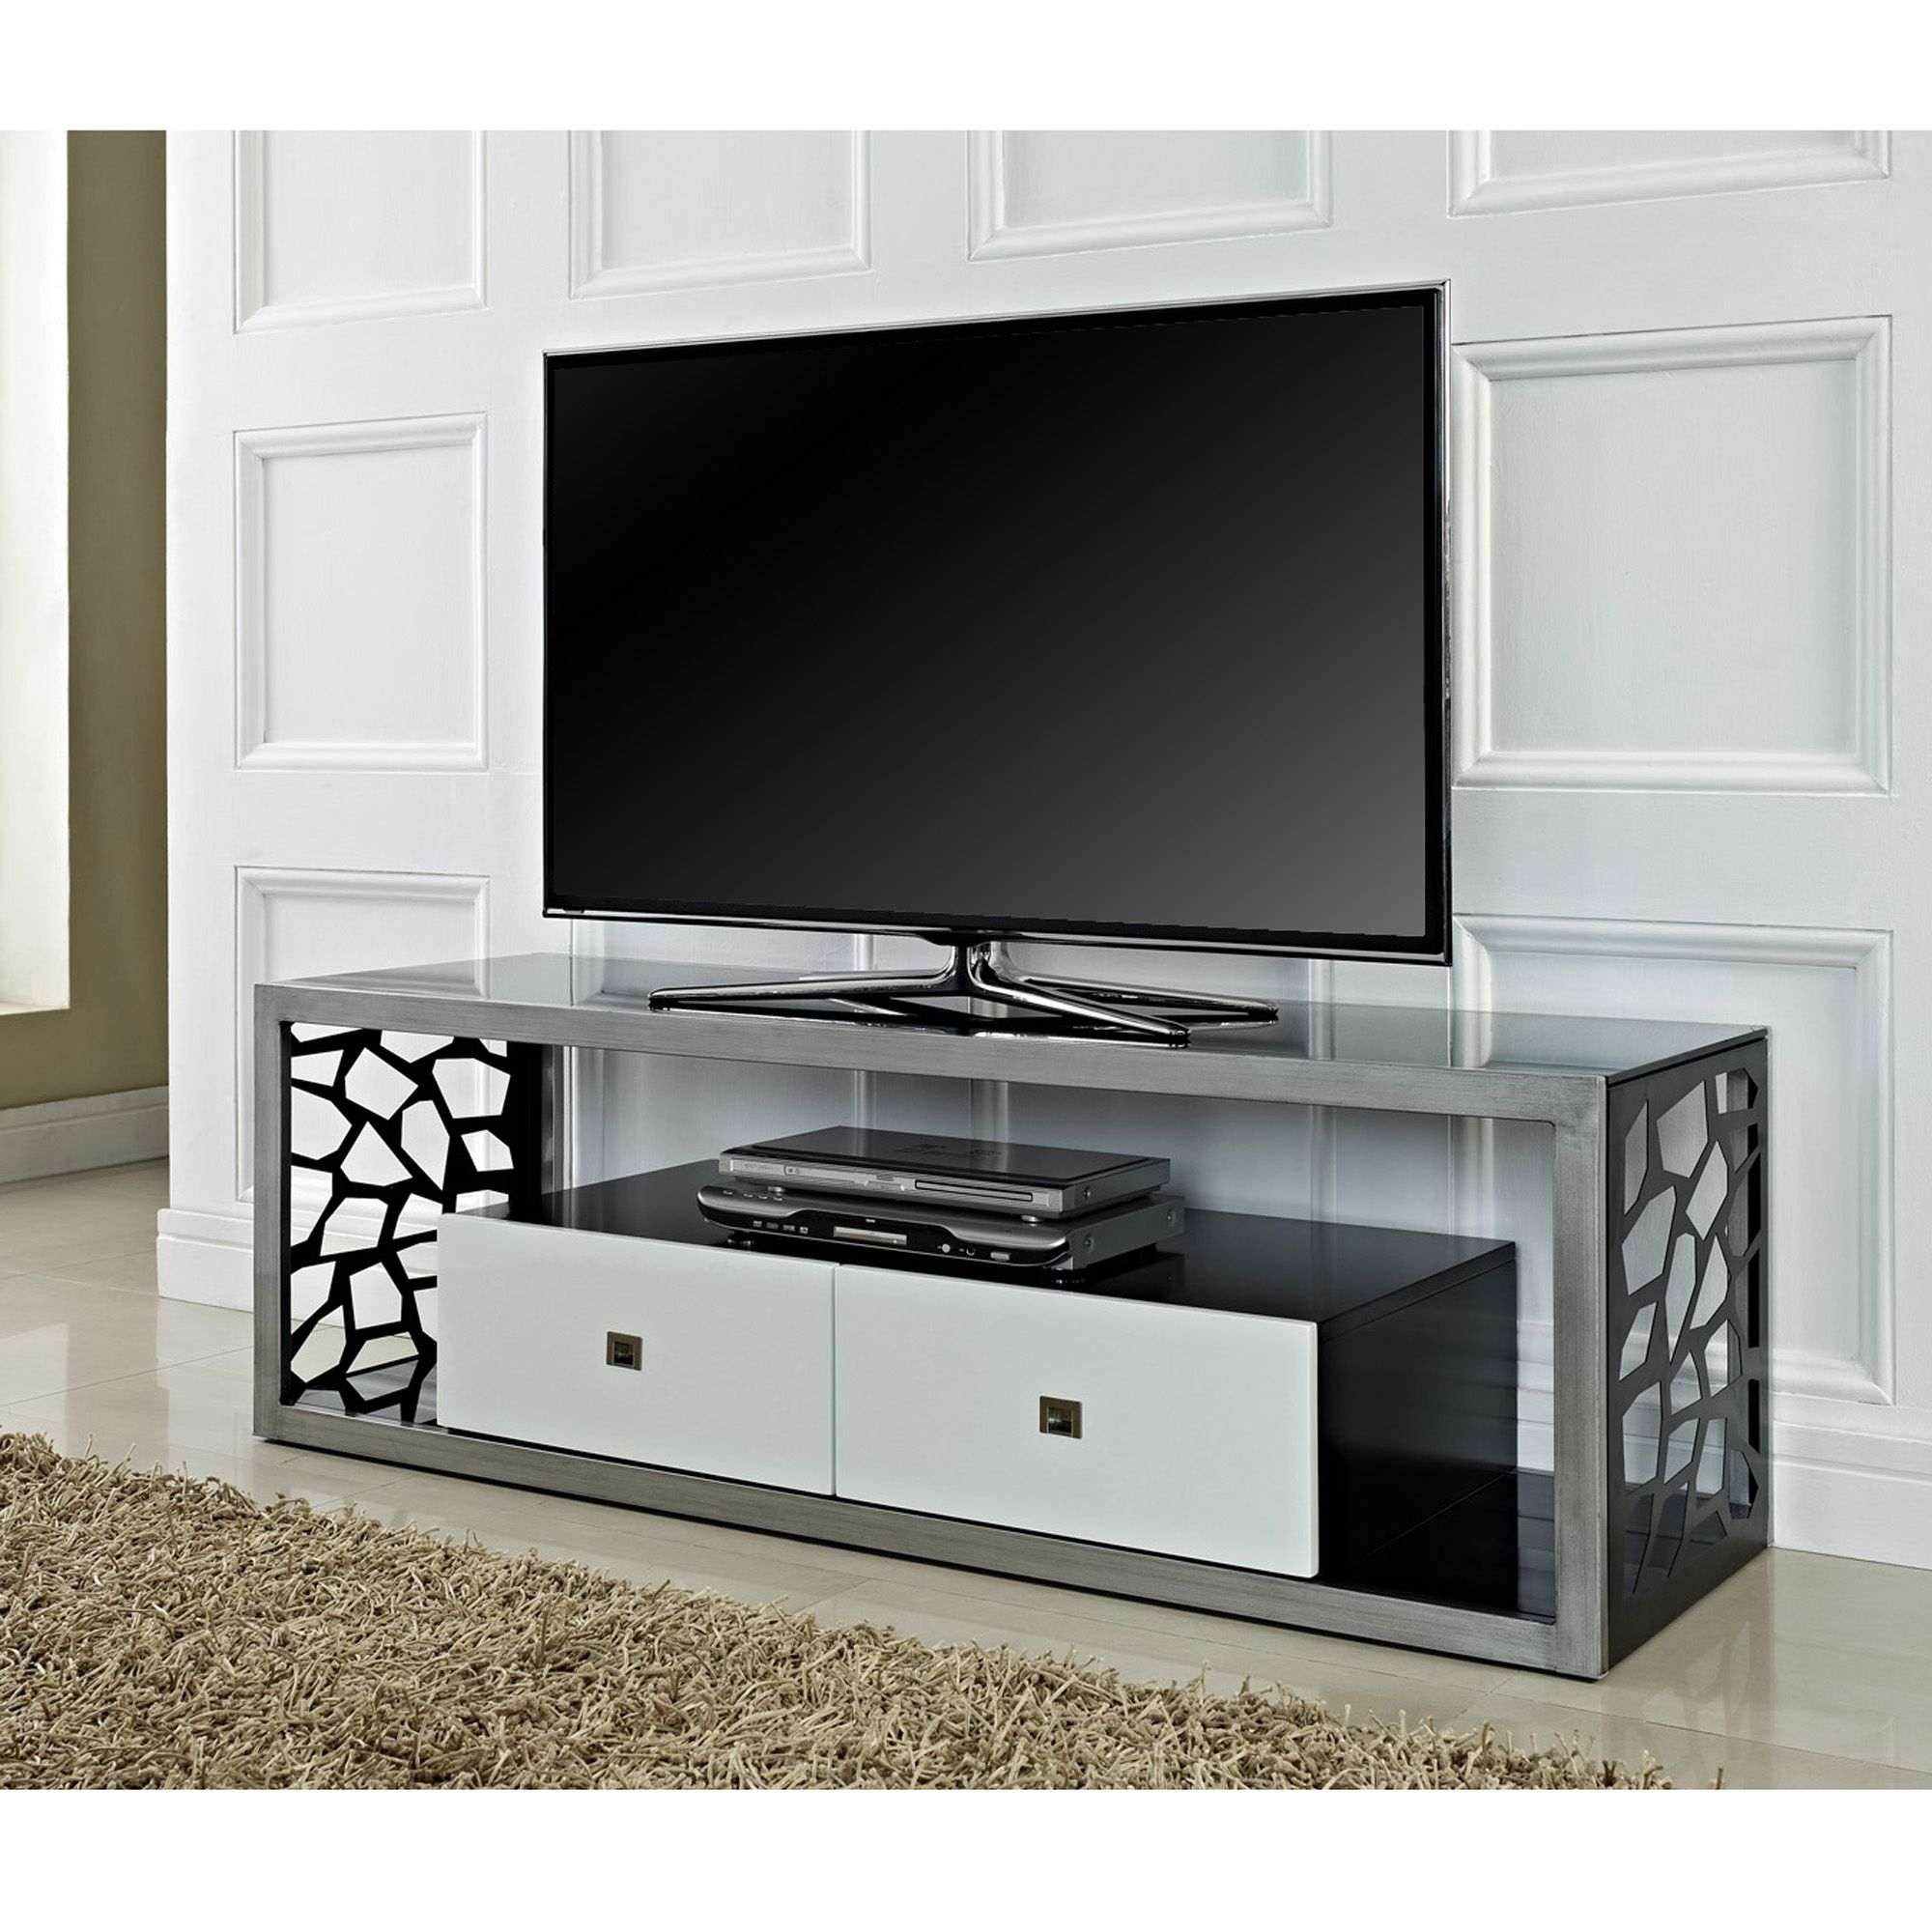 "Beautiful 60"" Mosaic Tv Stand, Brushed Silver Frame With White With Regard To Rowan 45 Inch Tv Stands (View 2 of 20)"